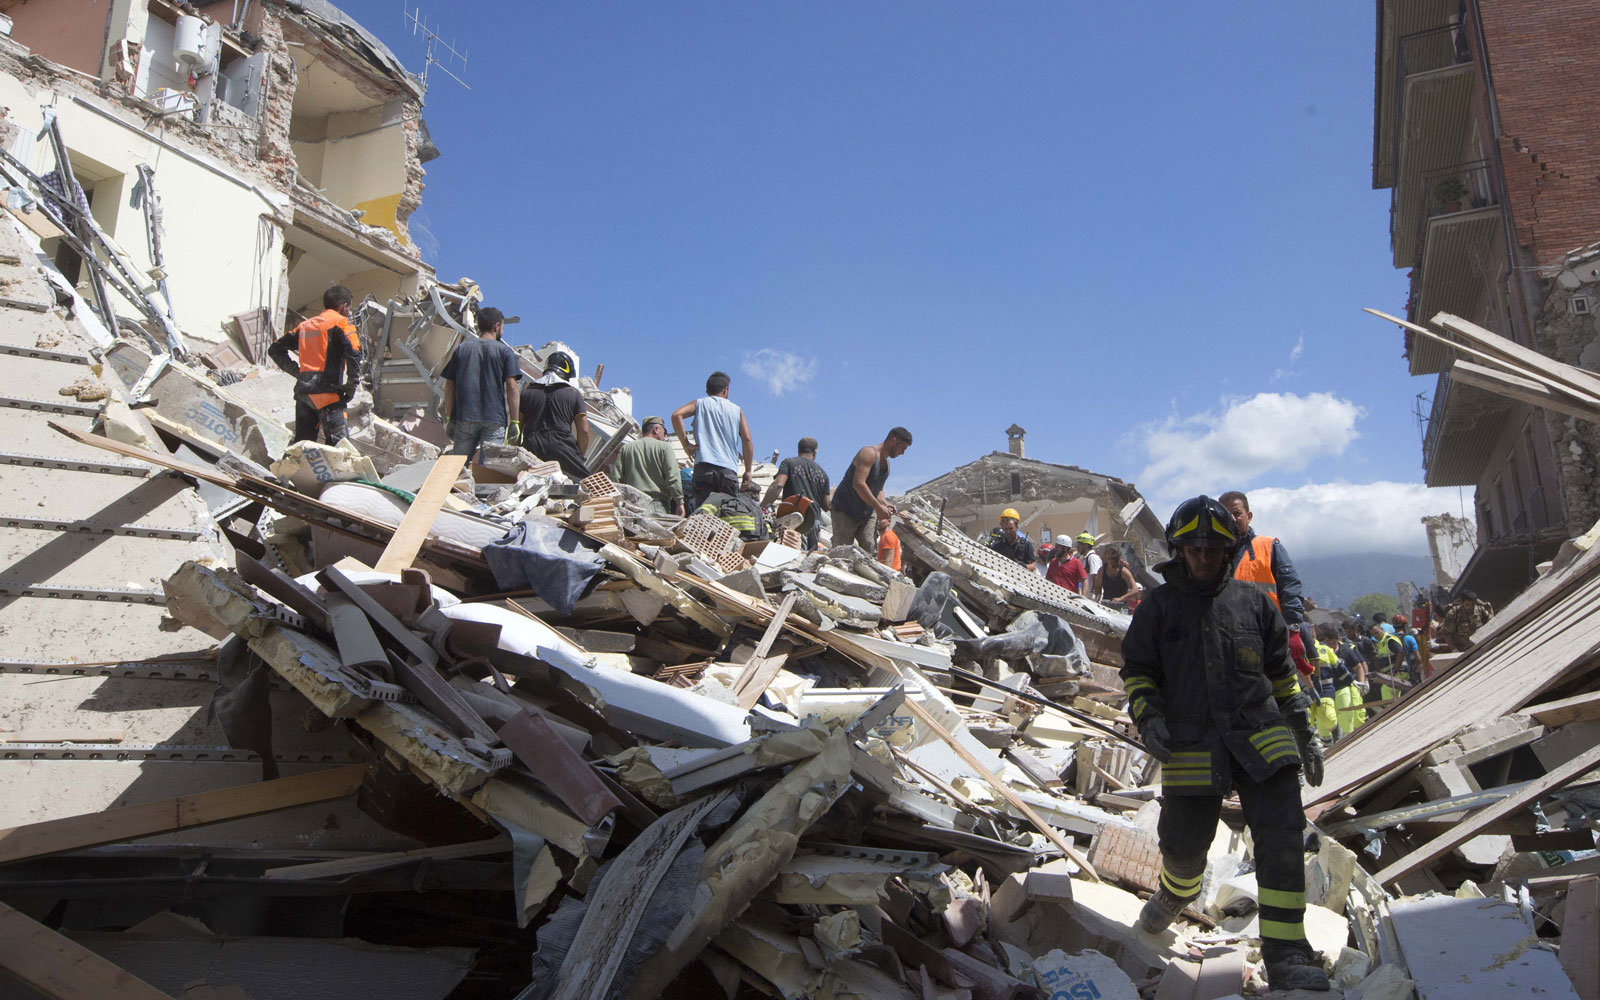 Firefighters clear rubble in Italy